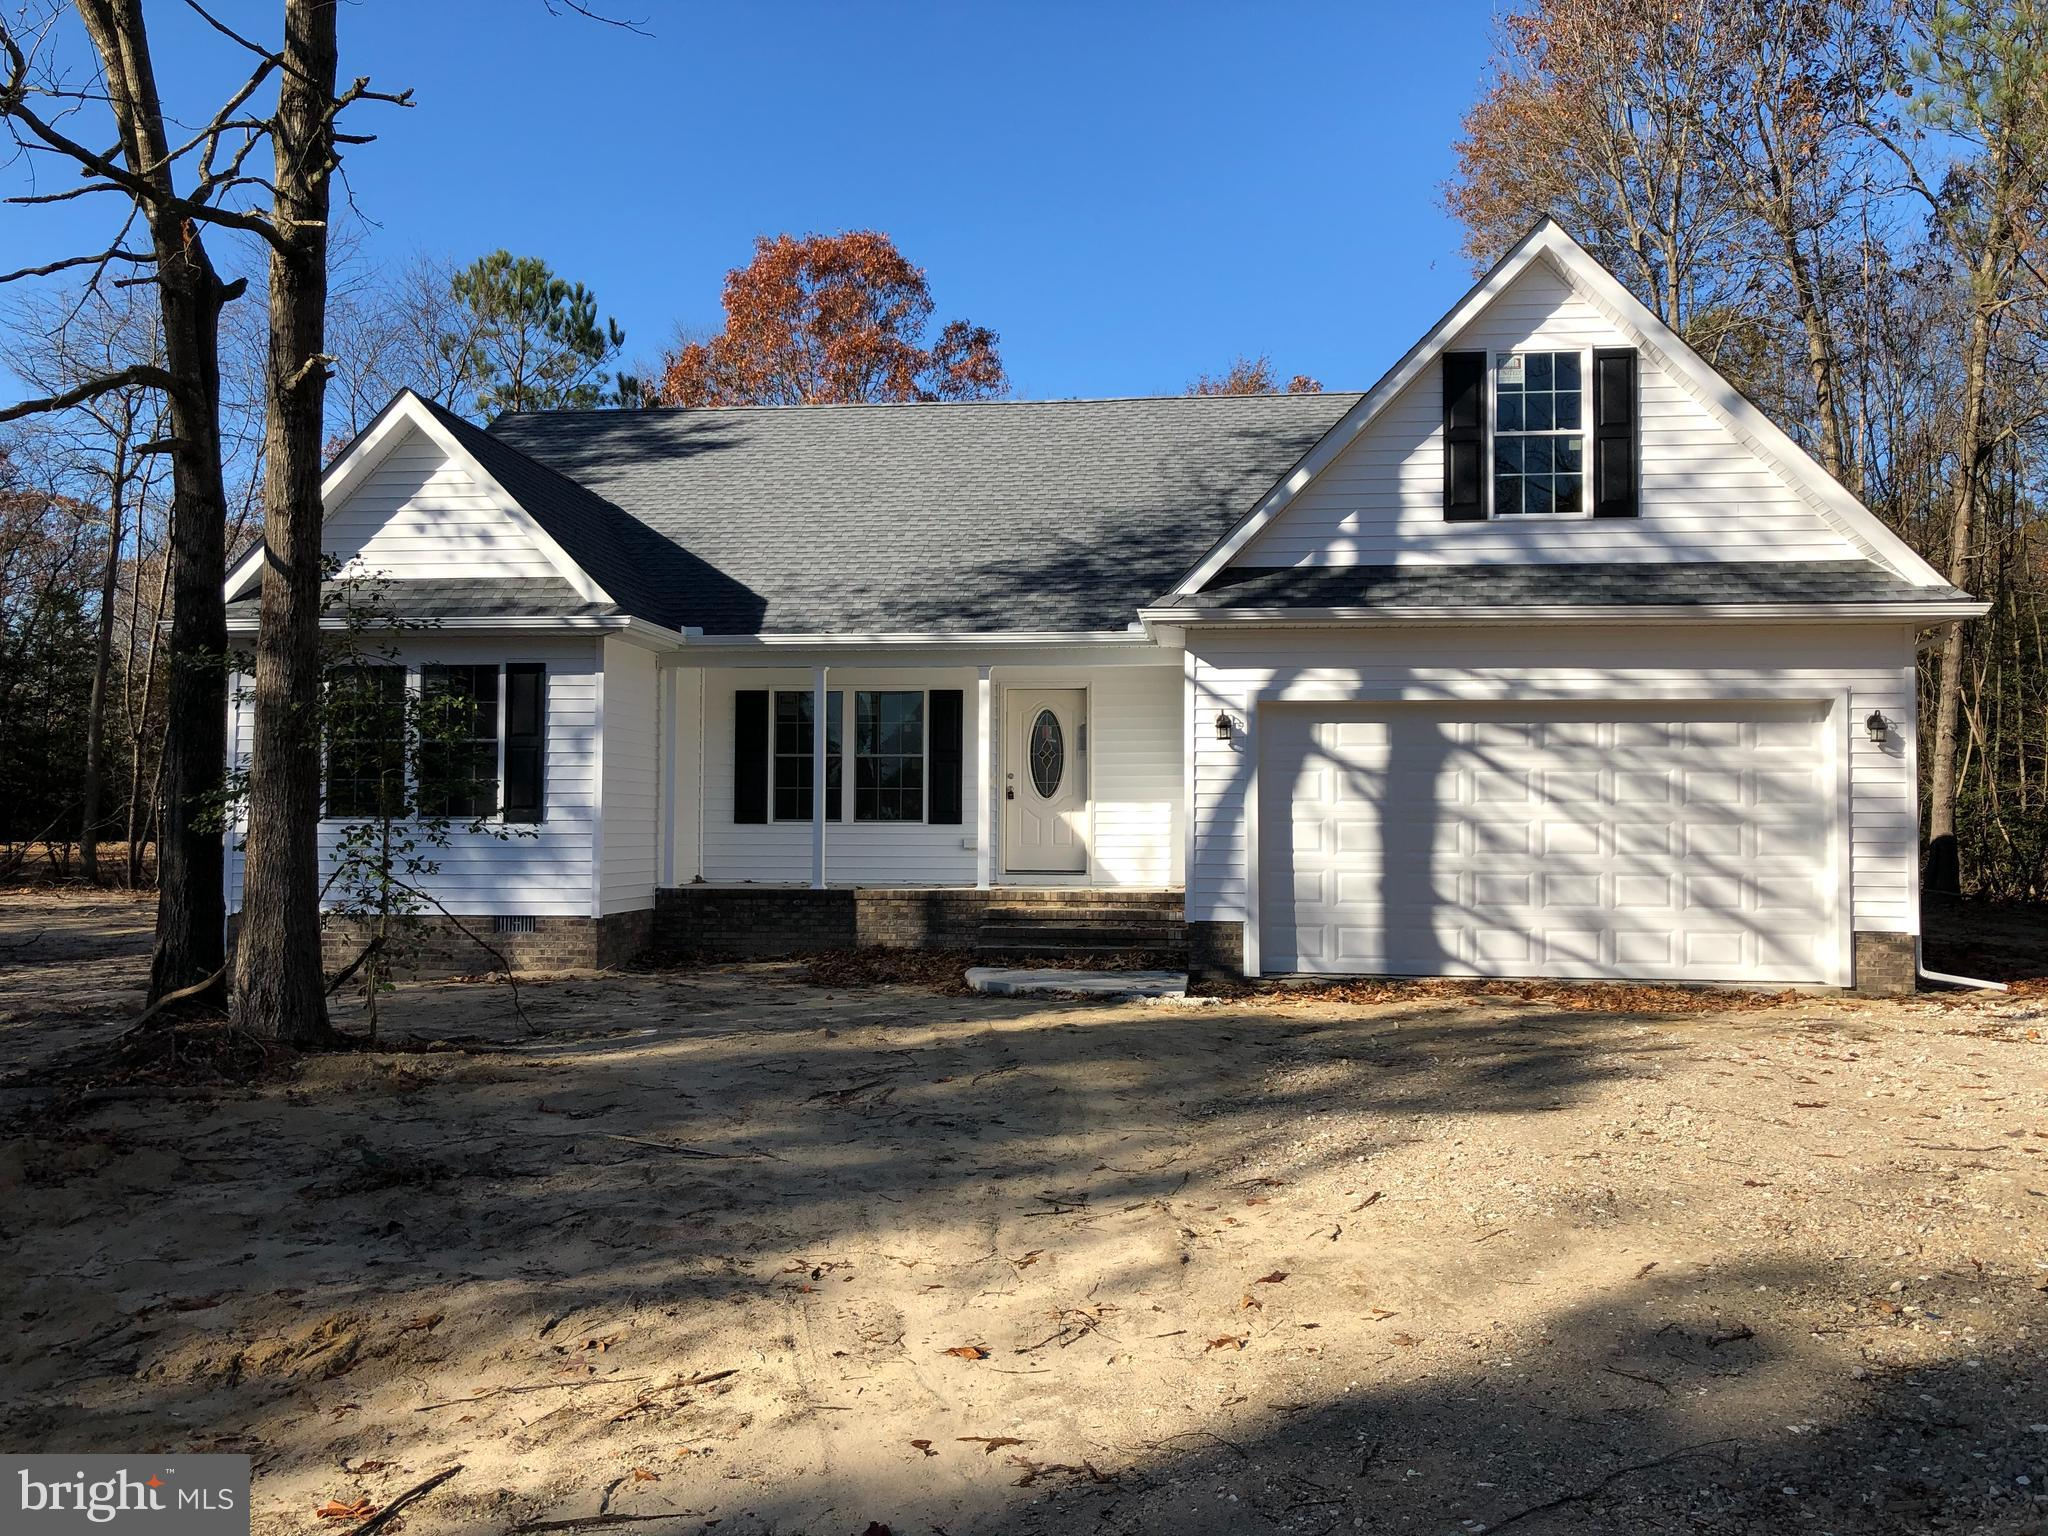 Truly a great floorplan on a cleared lot in North Towns End II. Home features LVP flooring in main living areas, stainless appliances, granite countertops, front porch, patio off the sunroom and a second floor that can be finished. Put you name on this so you can pick your color scheme!